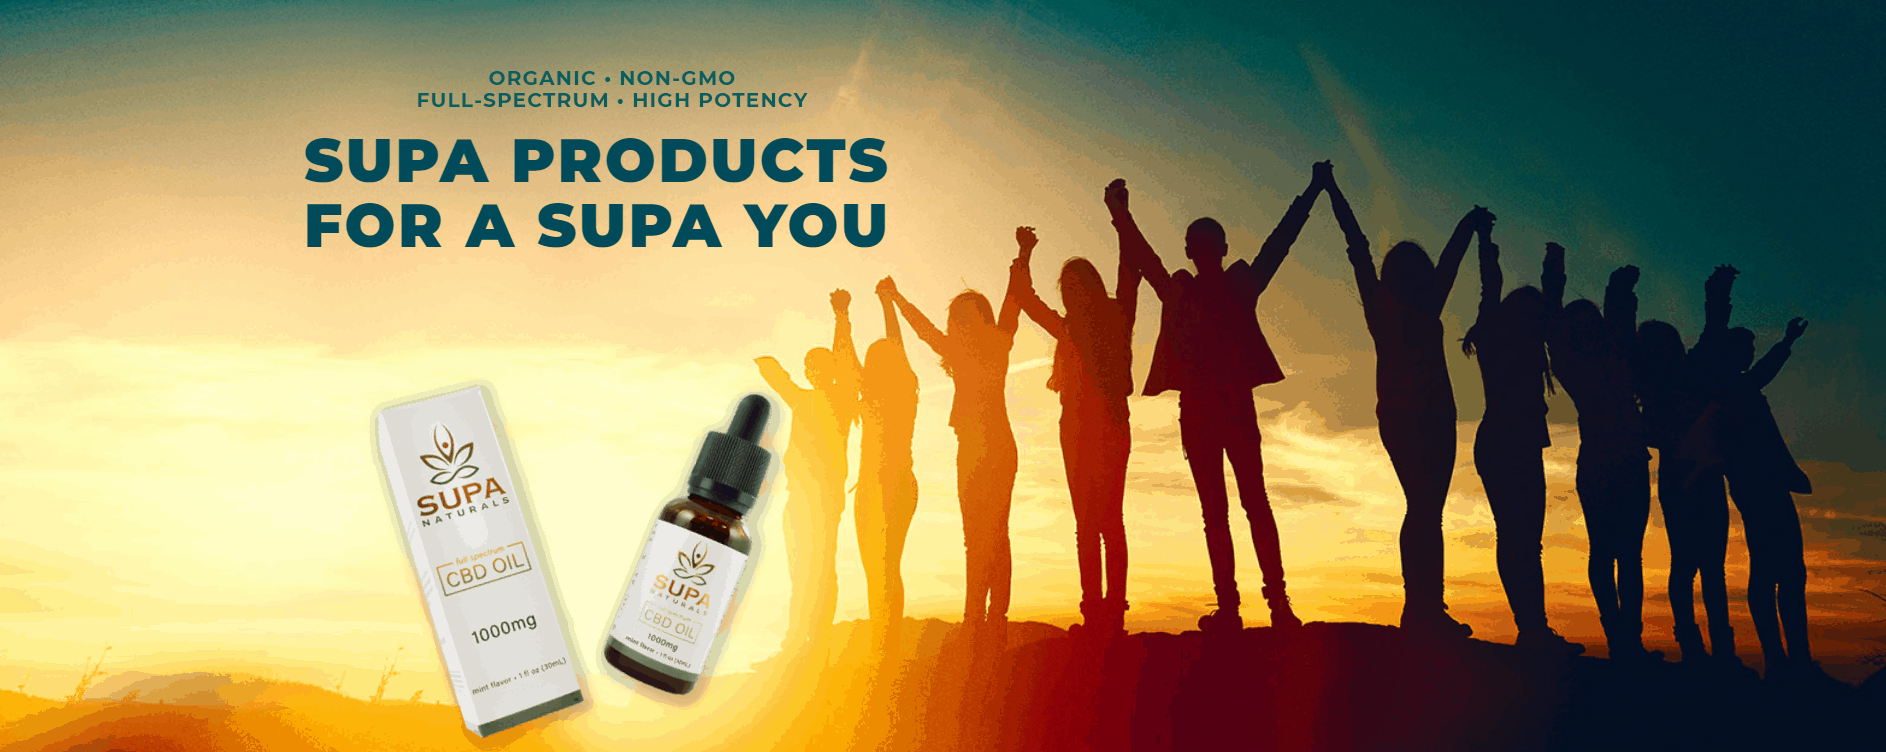 Supa Naturals CBD Coupons Organic Products